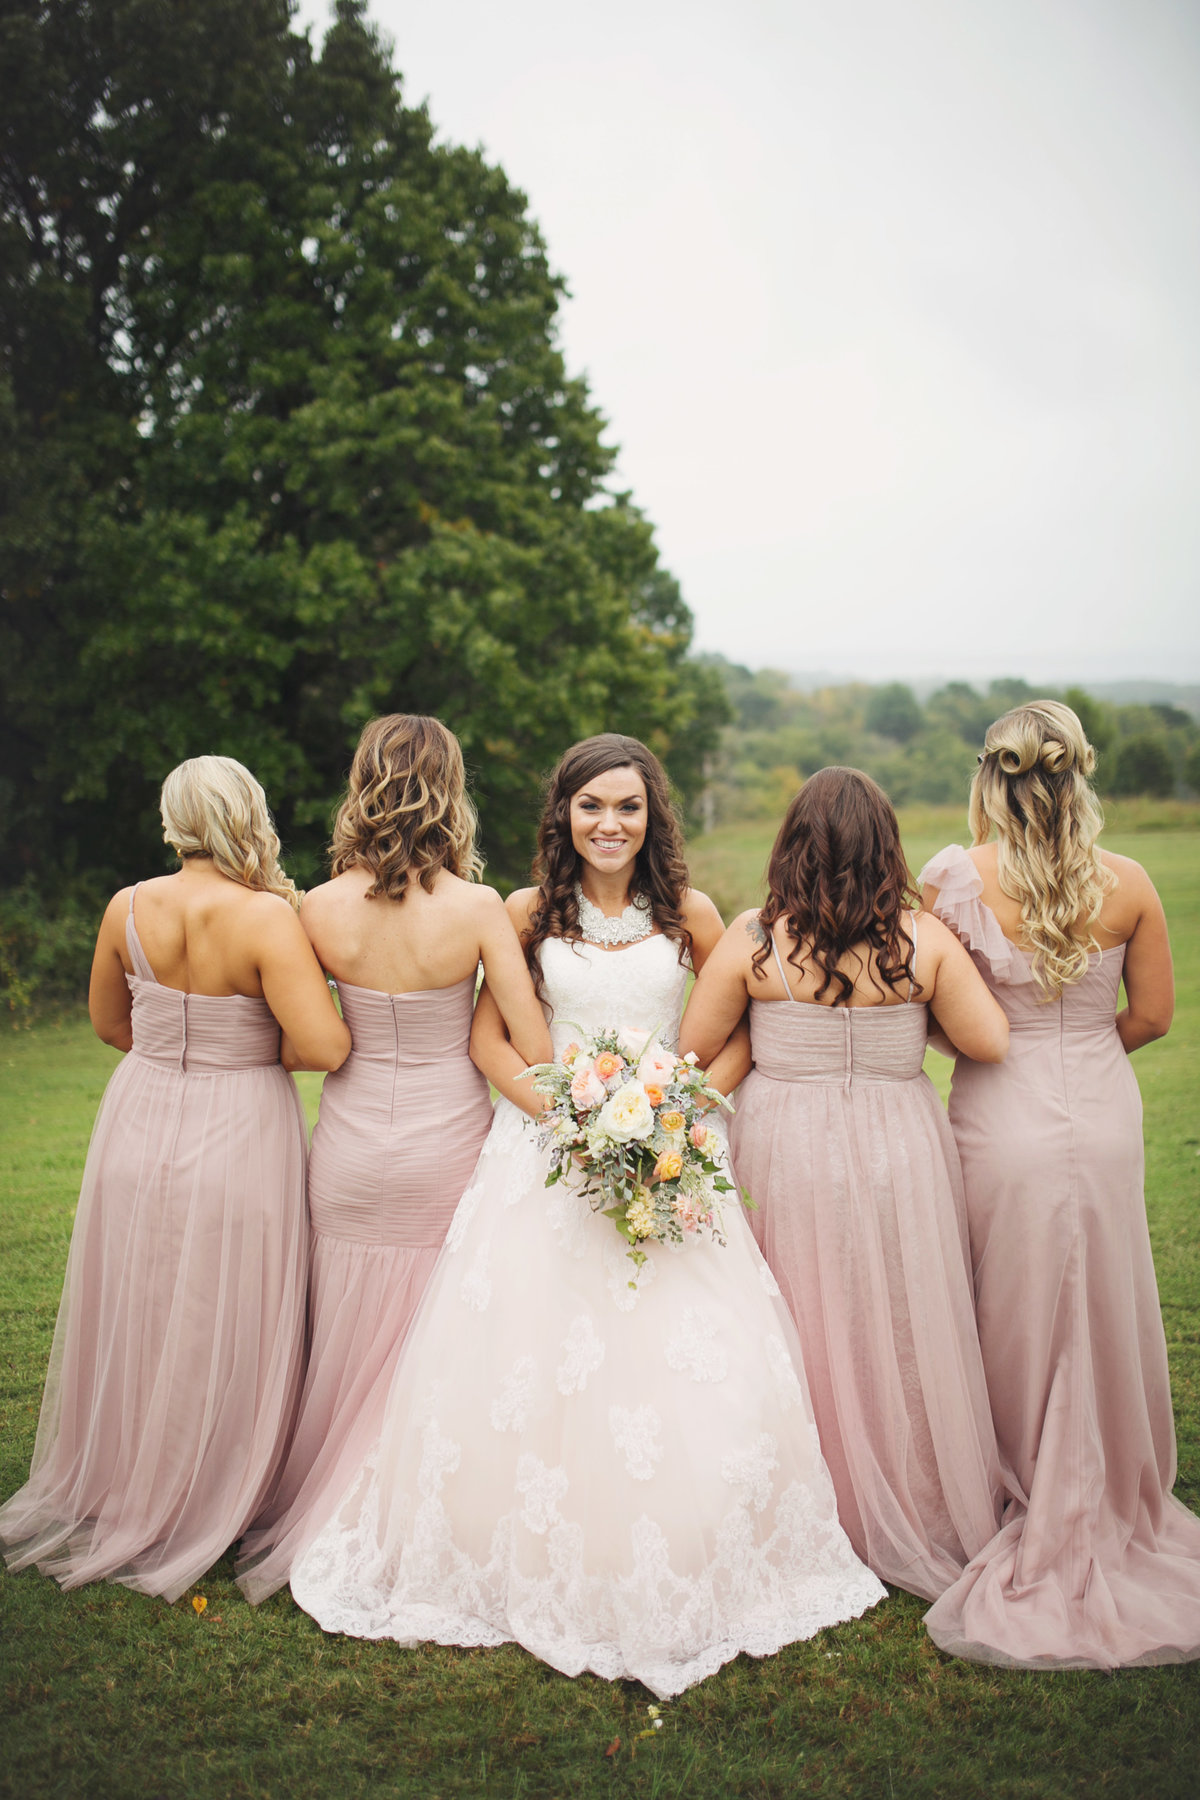 joel+christin-bridal party-35